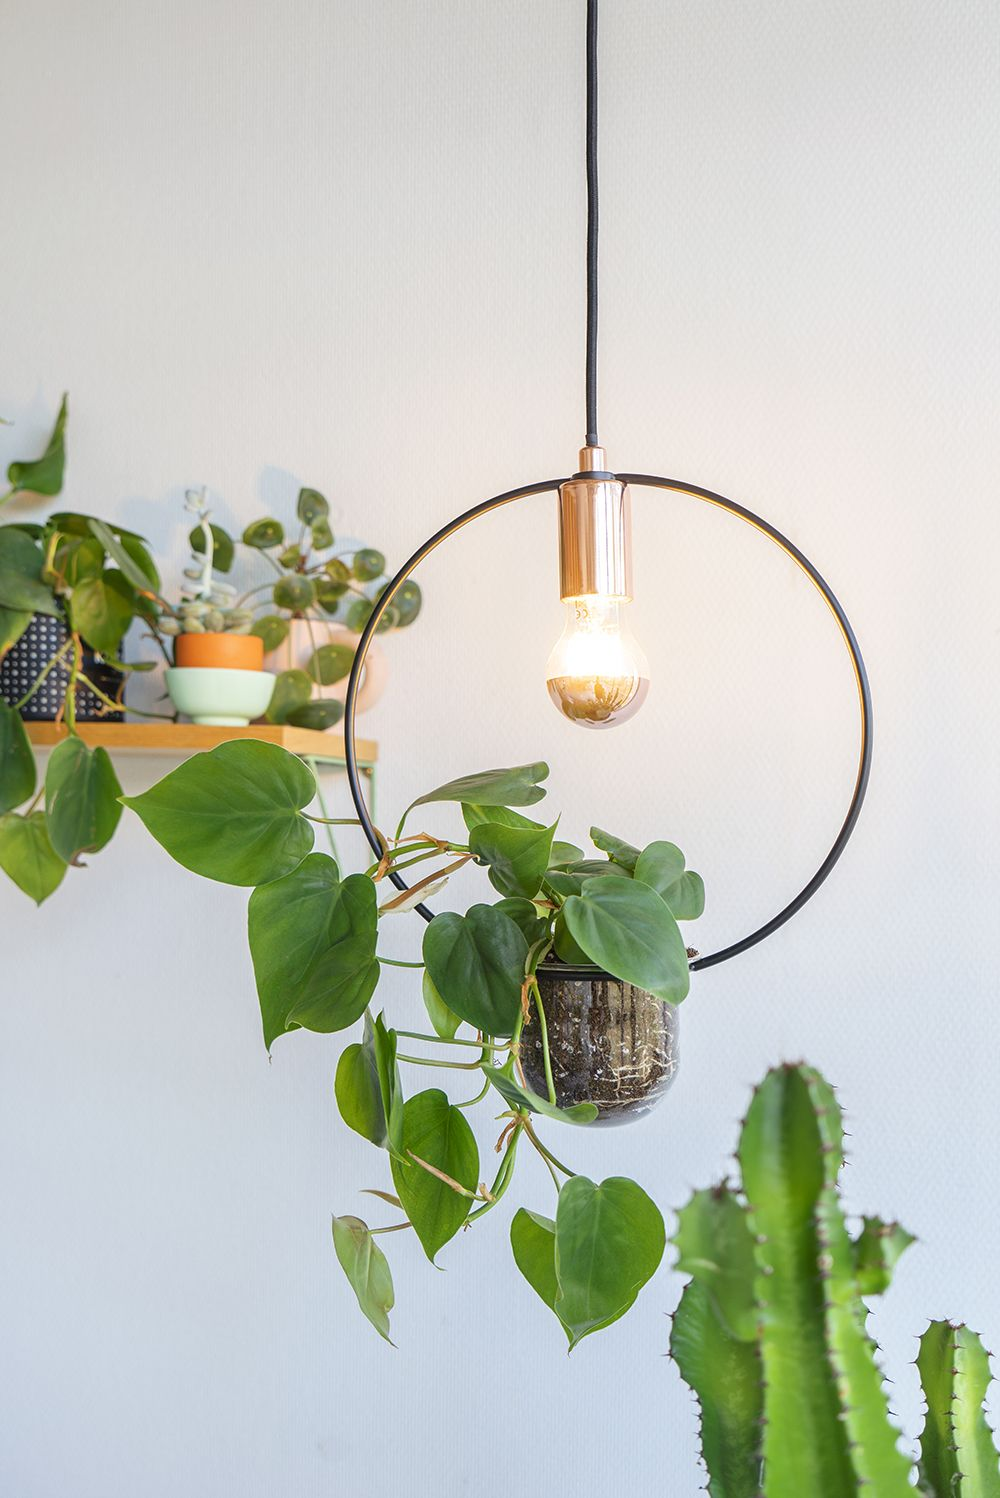 Paulmann Plant Lamps Grow Lights For